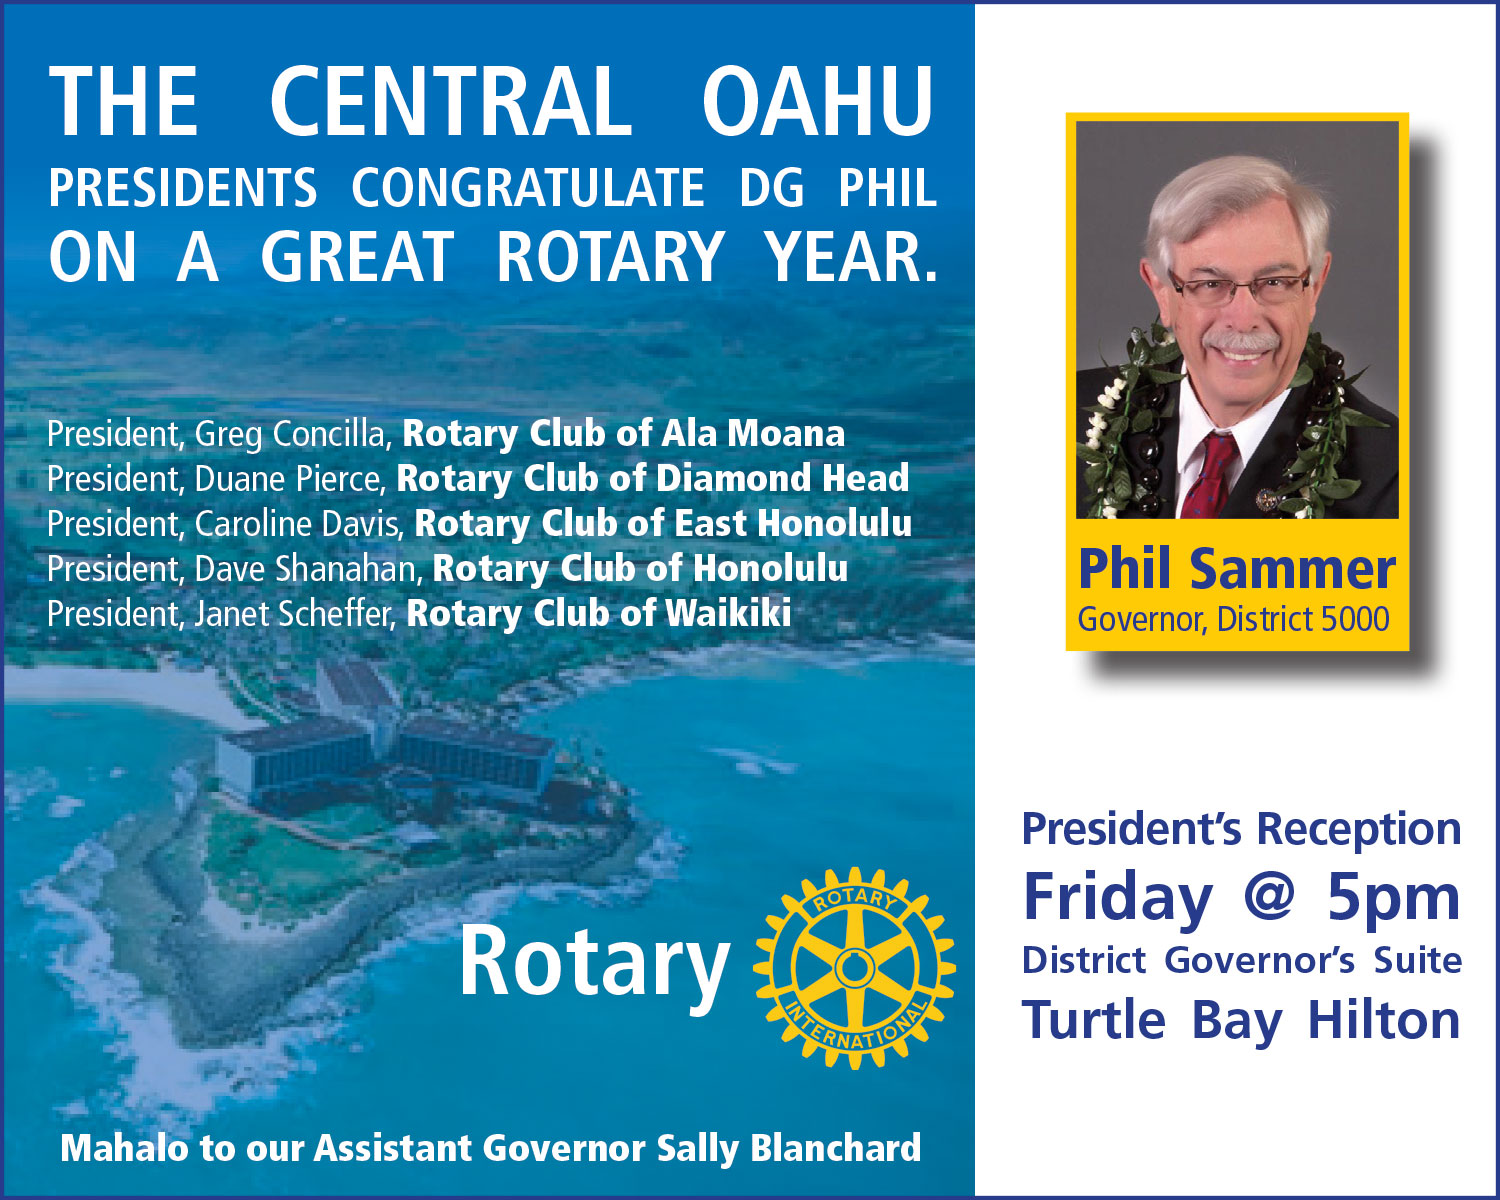 Rotary International - District Governor